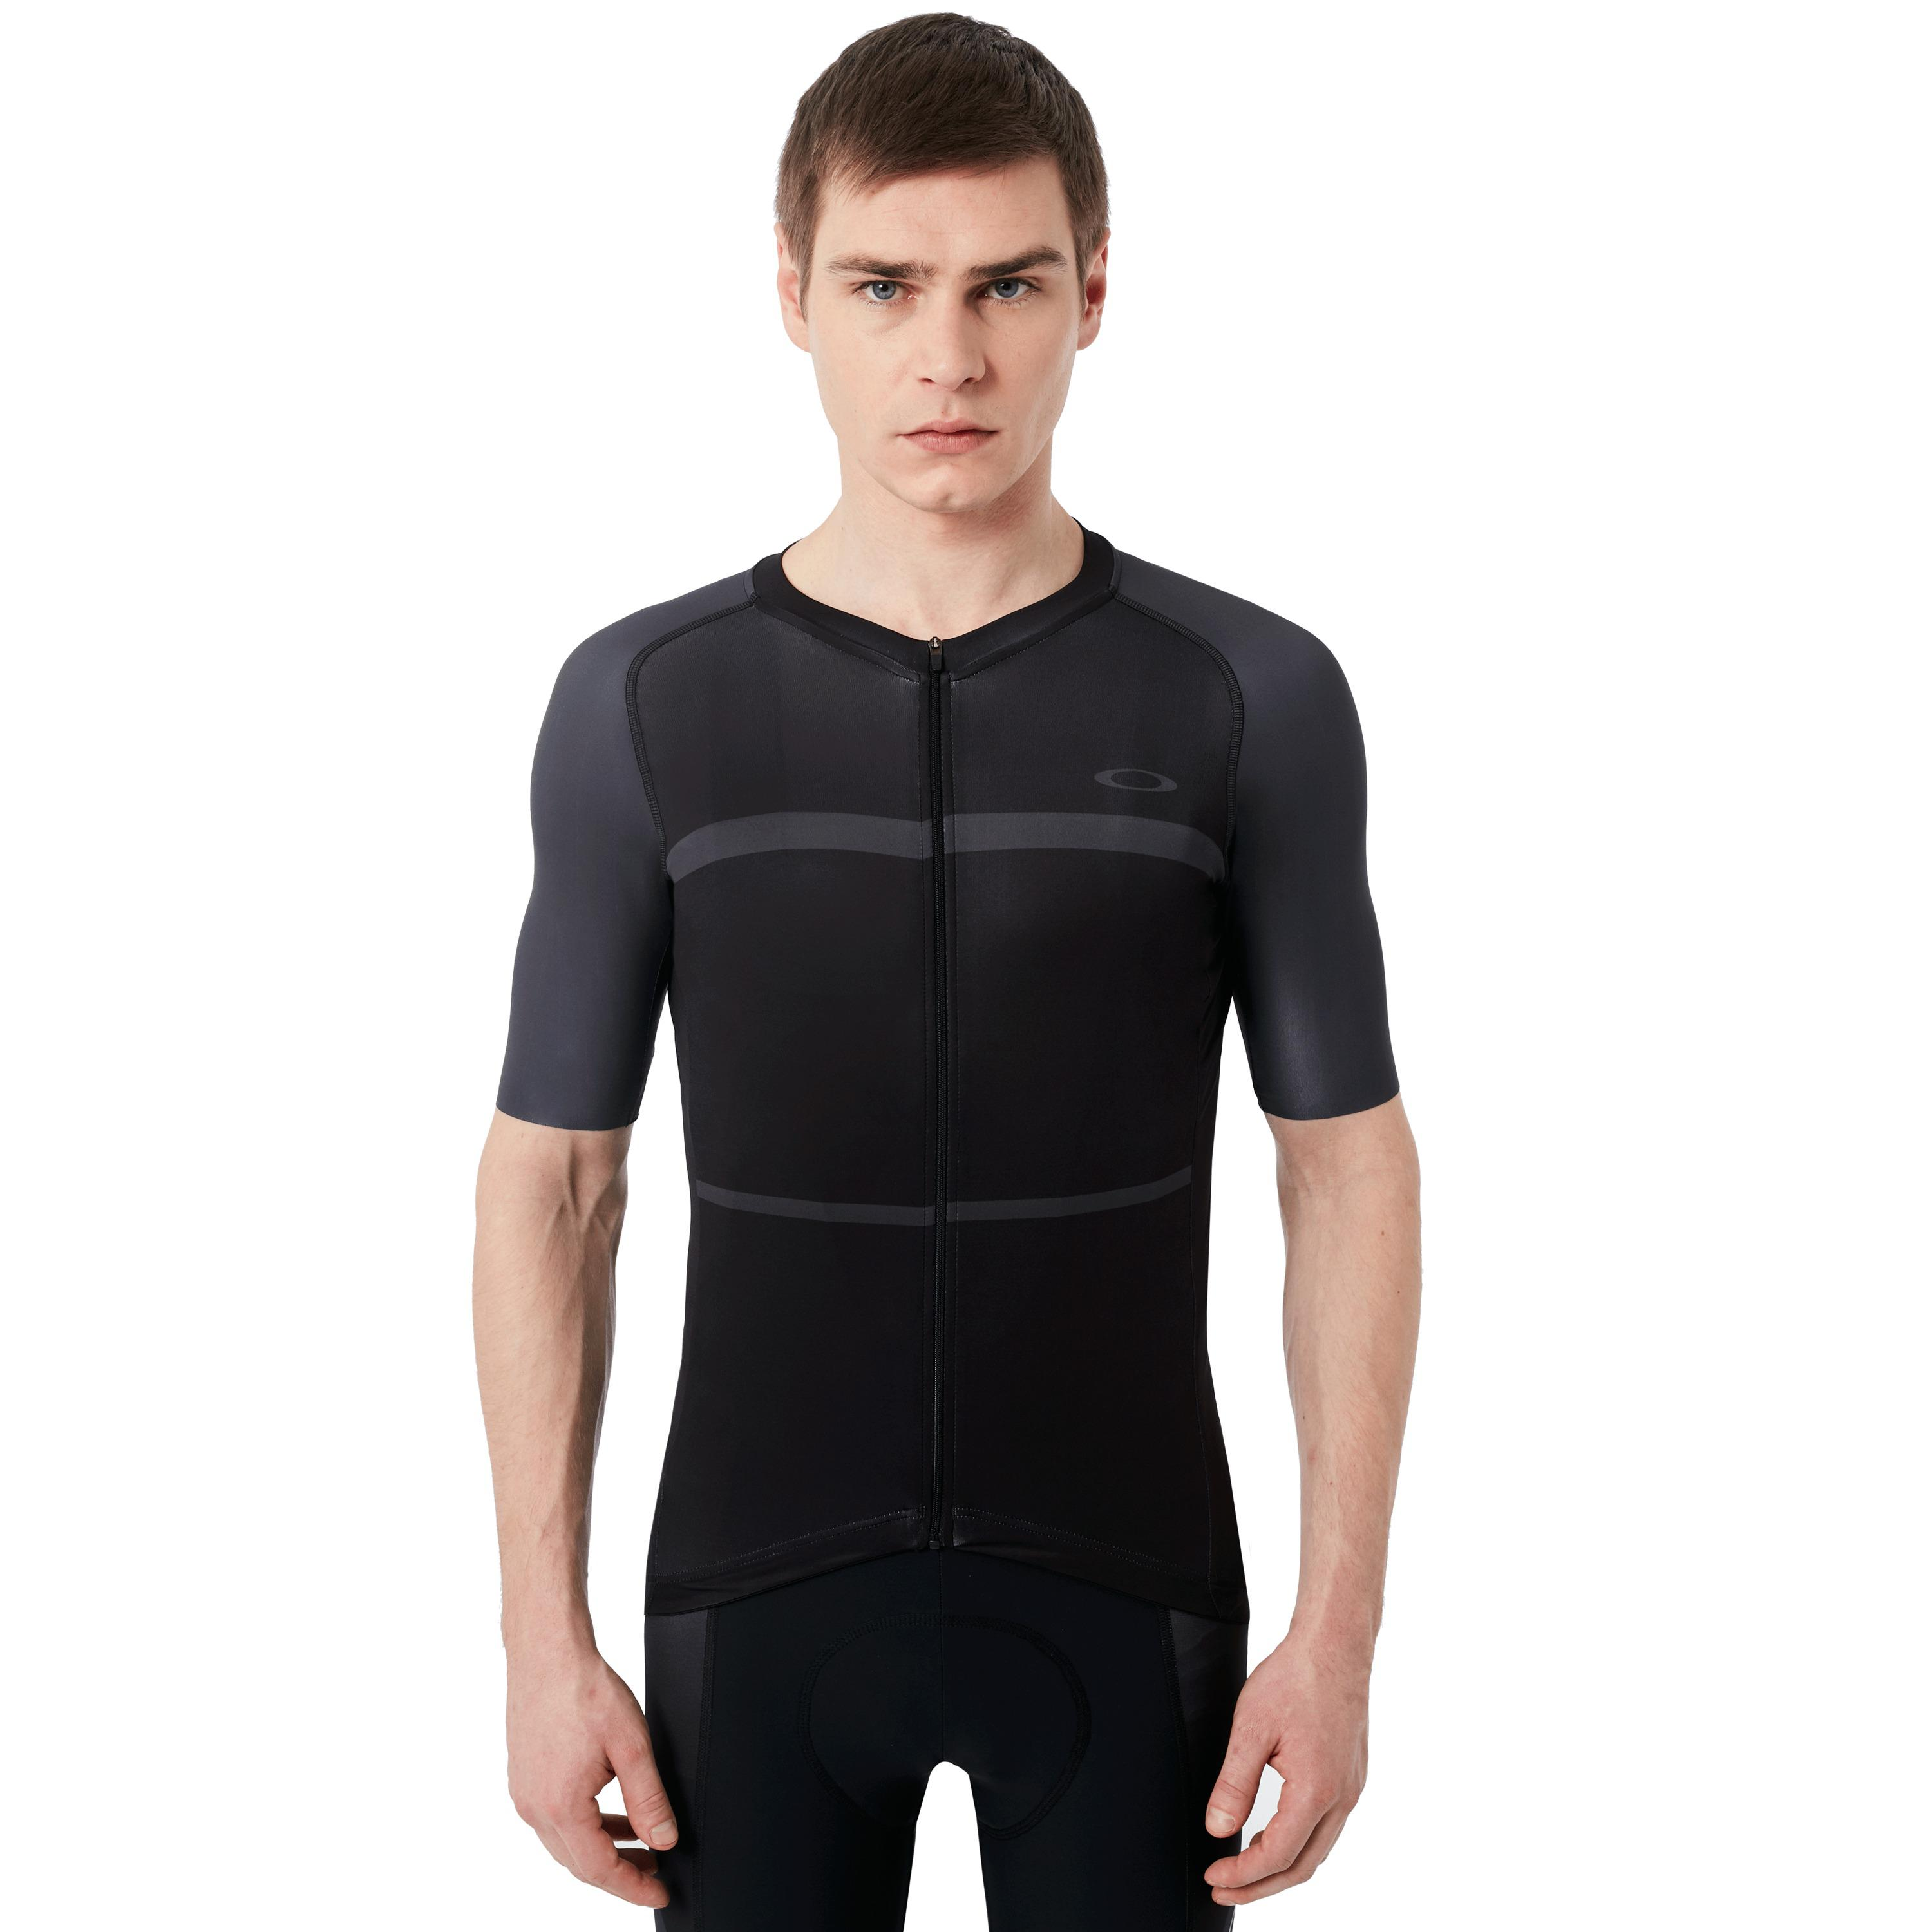 Lyst - Oakley Colorblock Road Jersey in Black for Men 3069a9dde